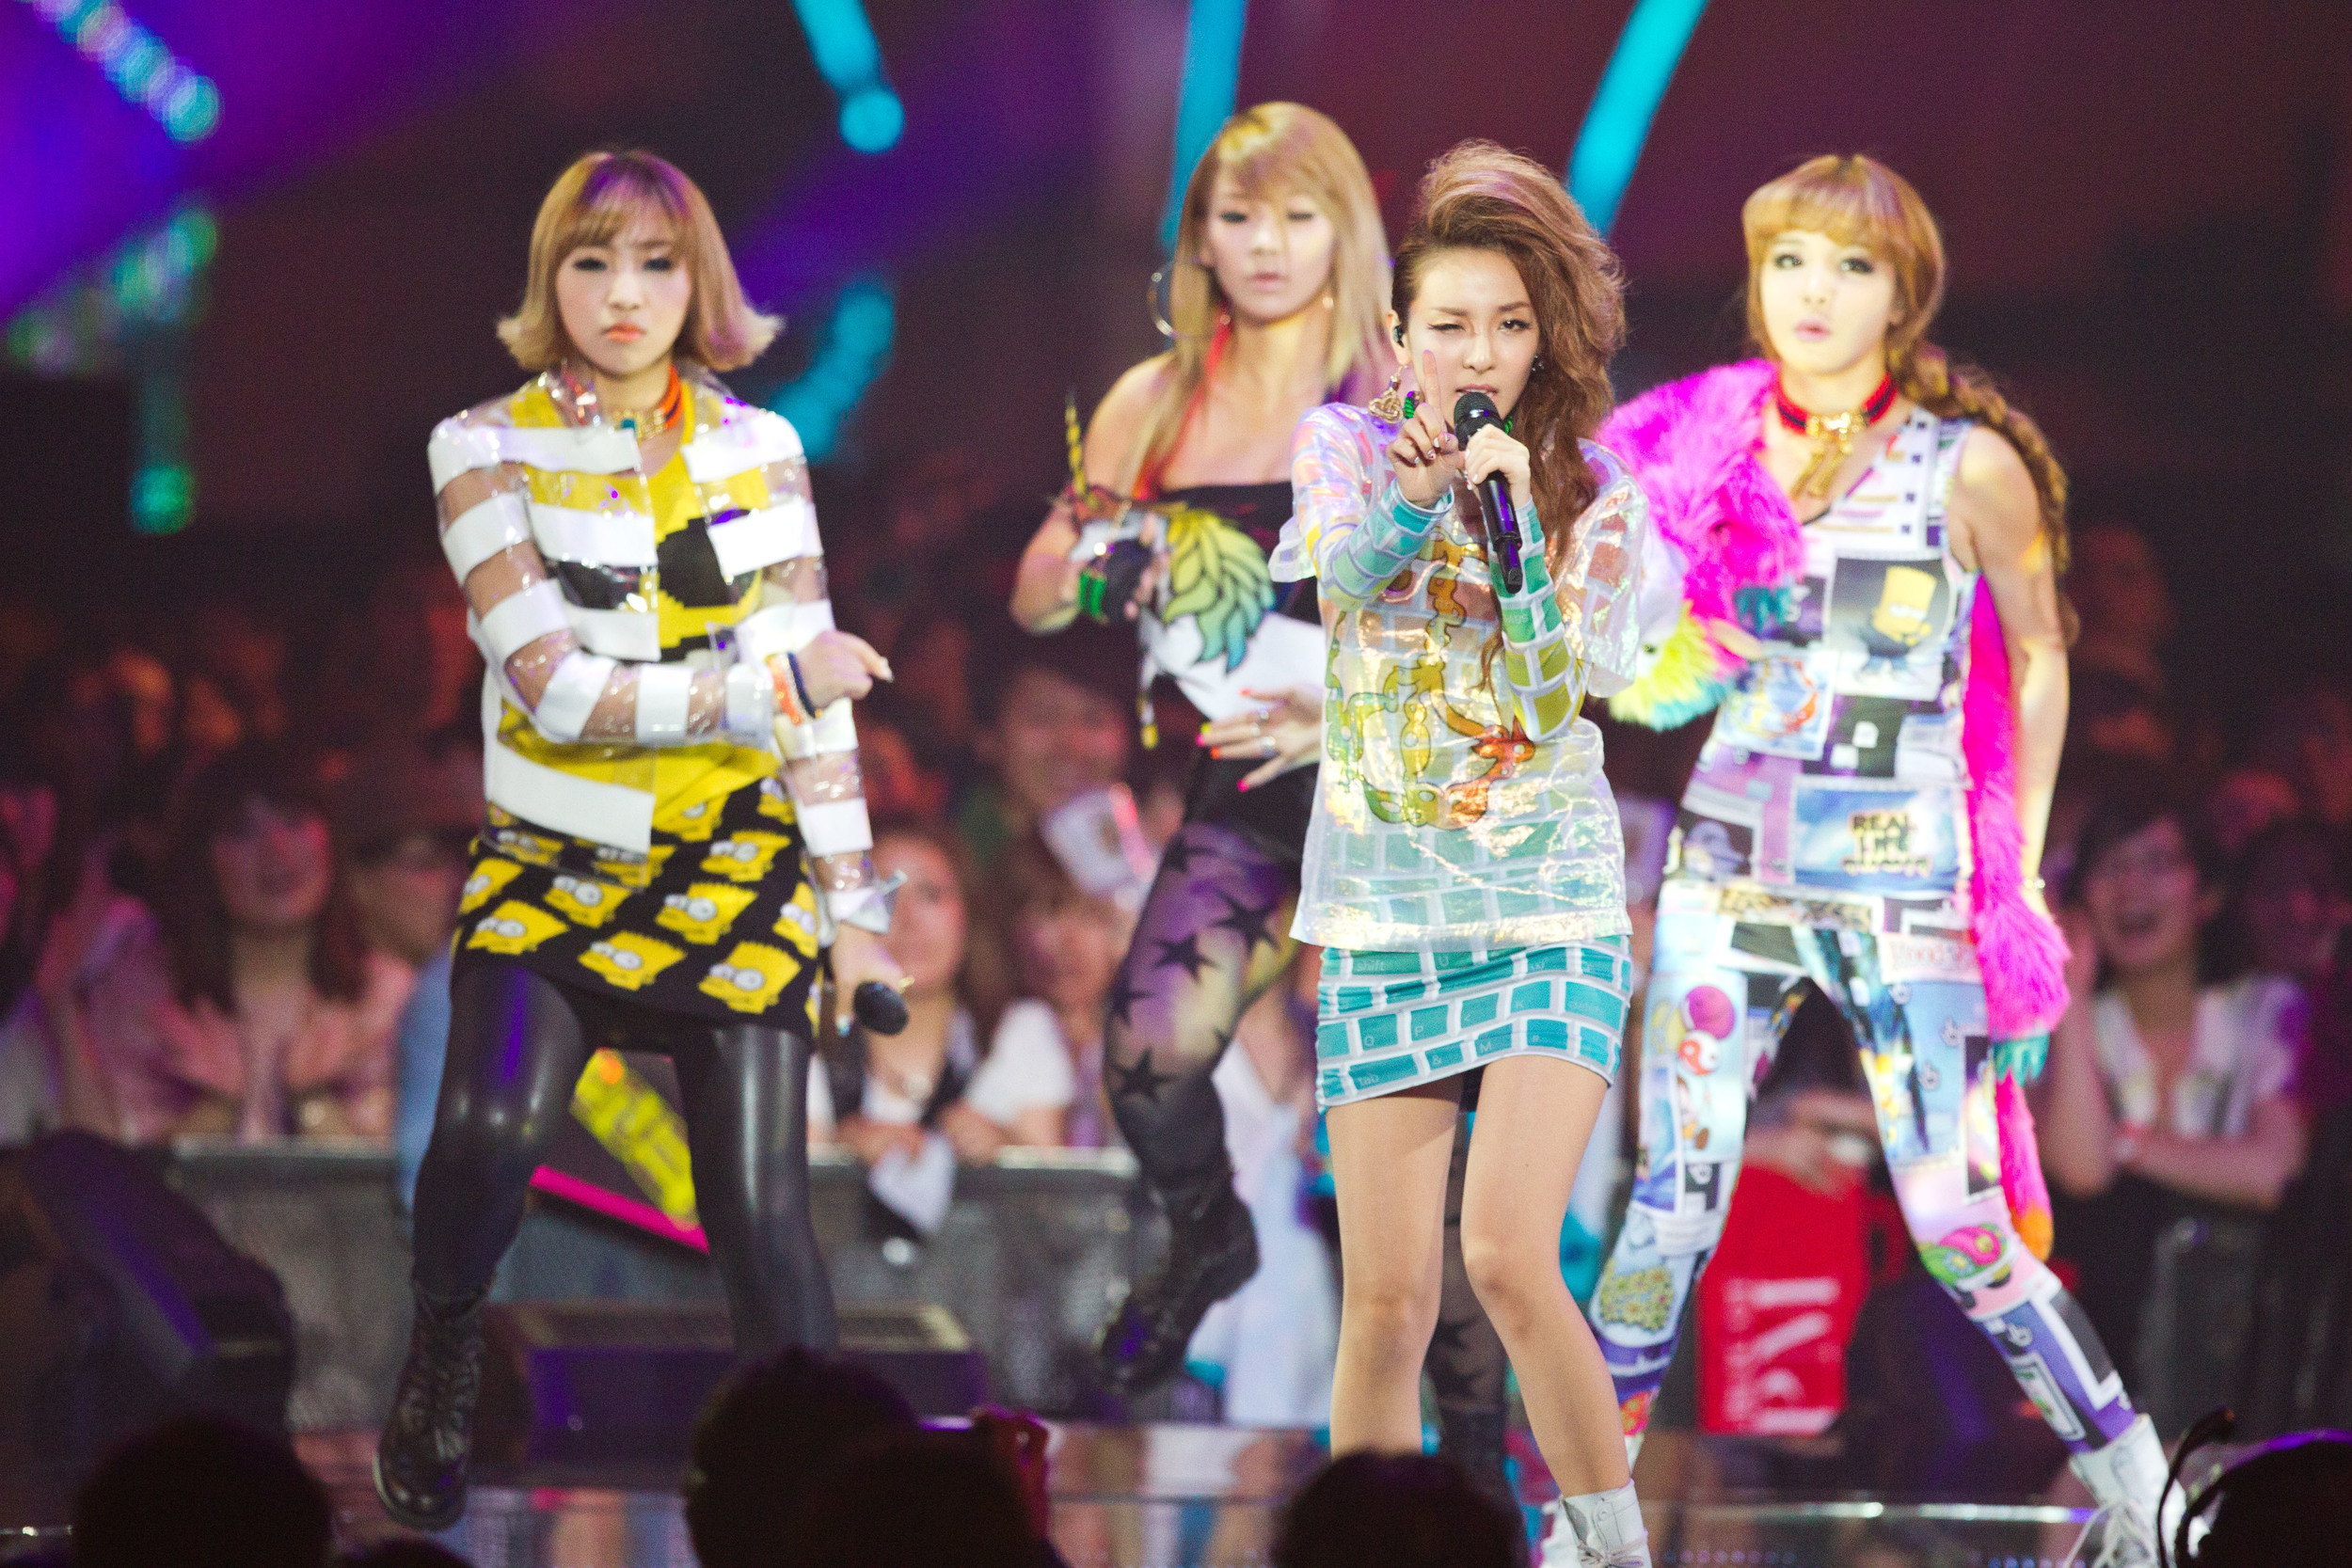 XJRC-MTV_Video_Music_Awards_Japan_IMGL2455.JPG